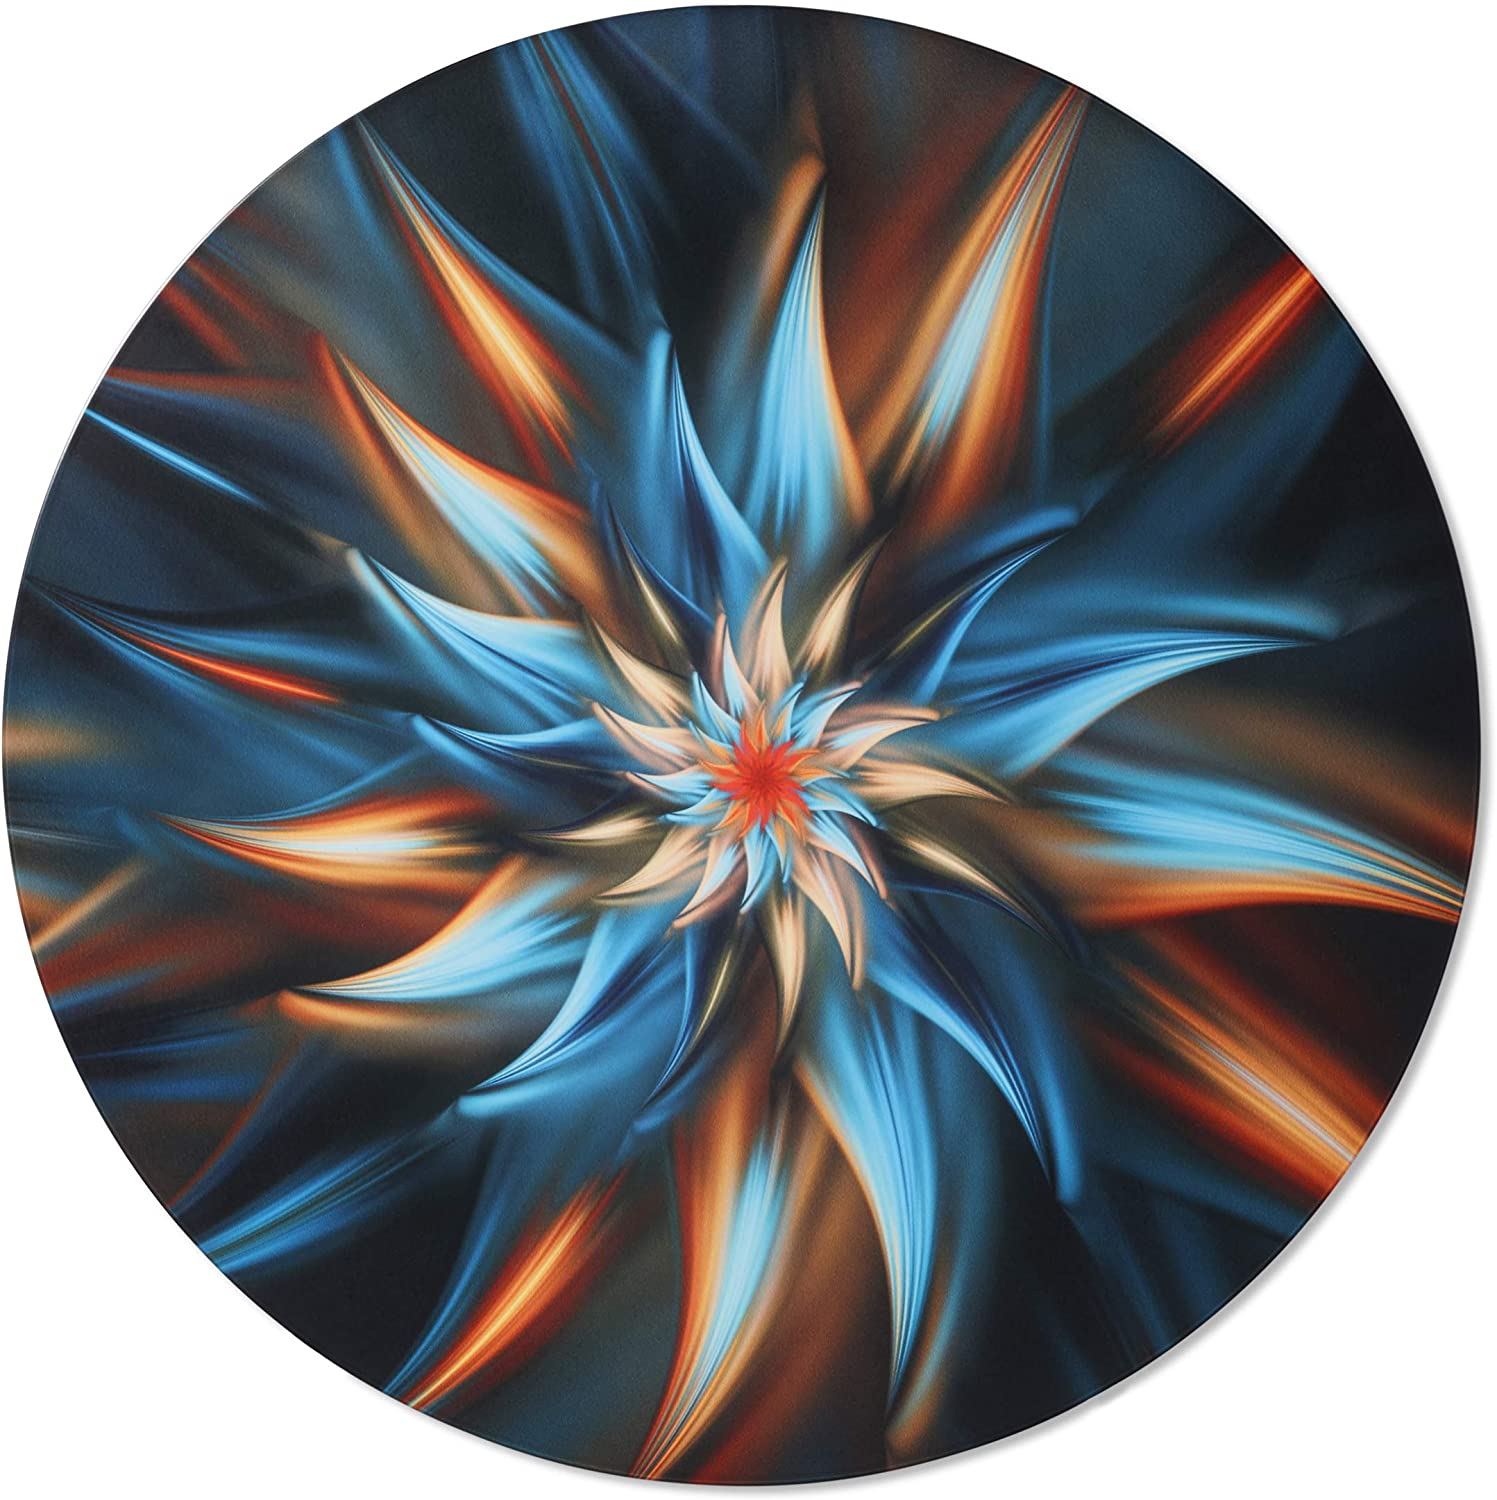 Metal Wall Art - Abstract Swirl Round Hanging Wall Decor - Handmade in the USA for Use Indoors or Outdoors